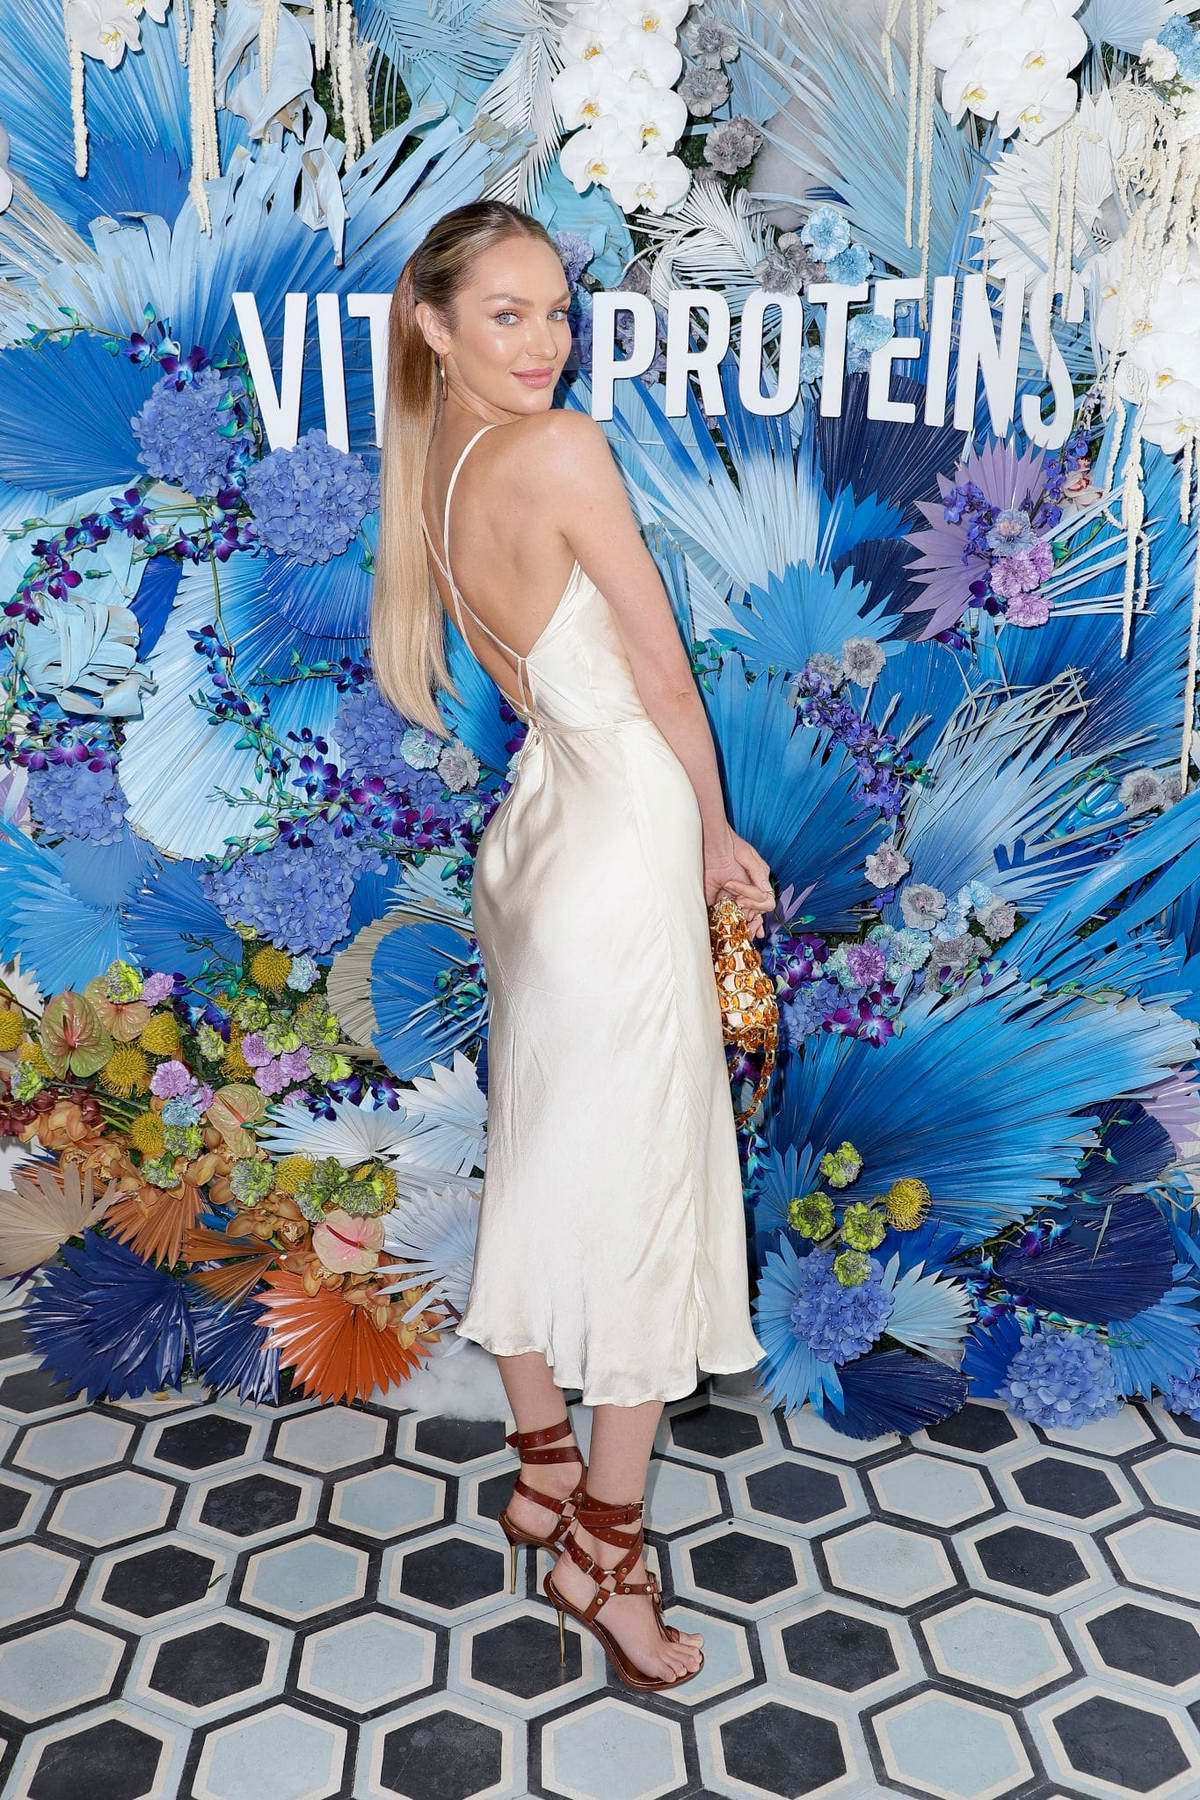 Candice Swanepoel attends the Vital Proteins Swim Week Collagen Water Brunch at Soho Beach House in Miami, Florida